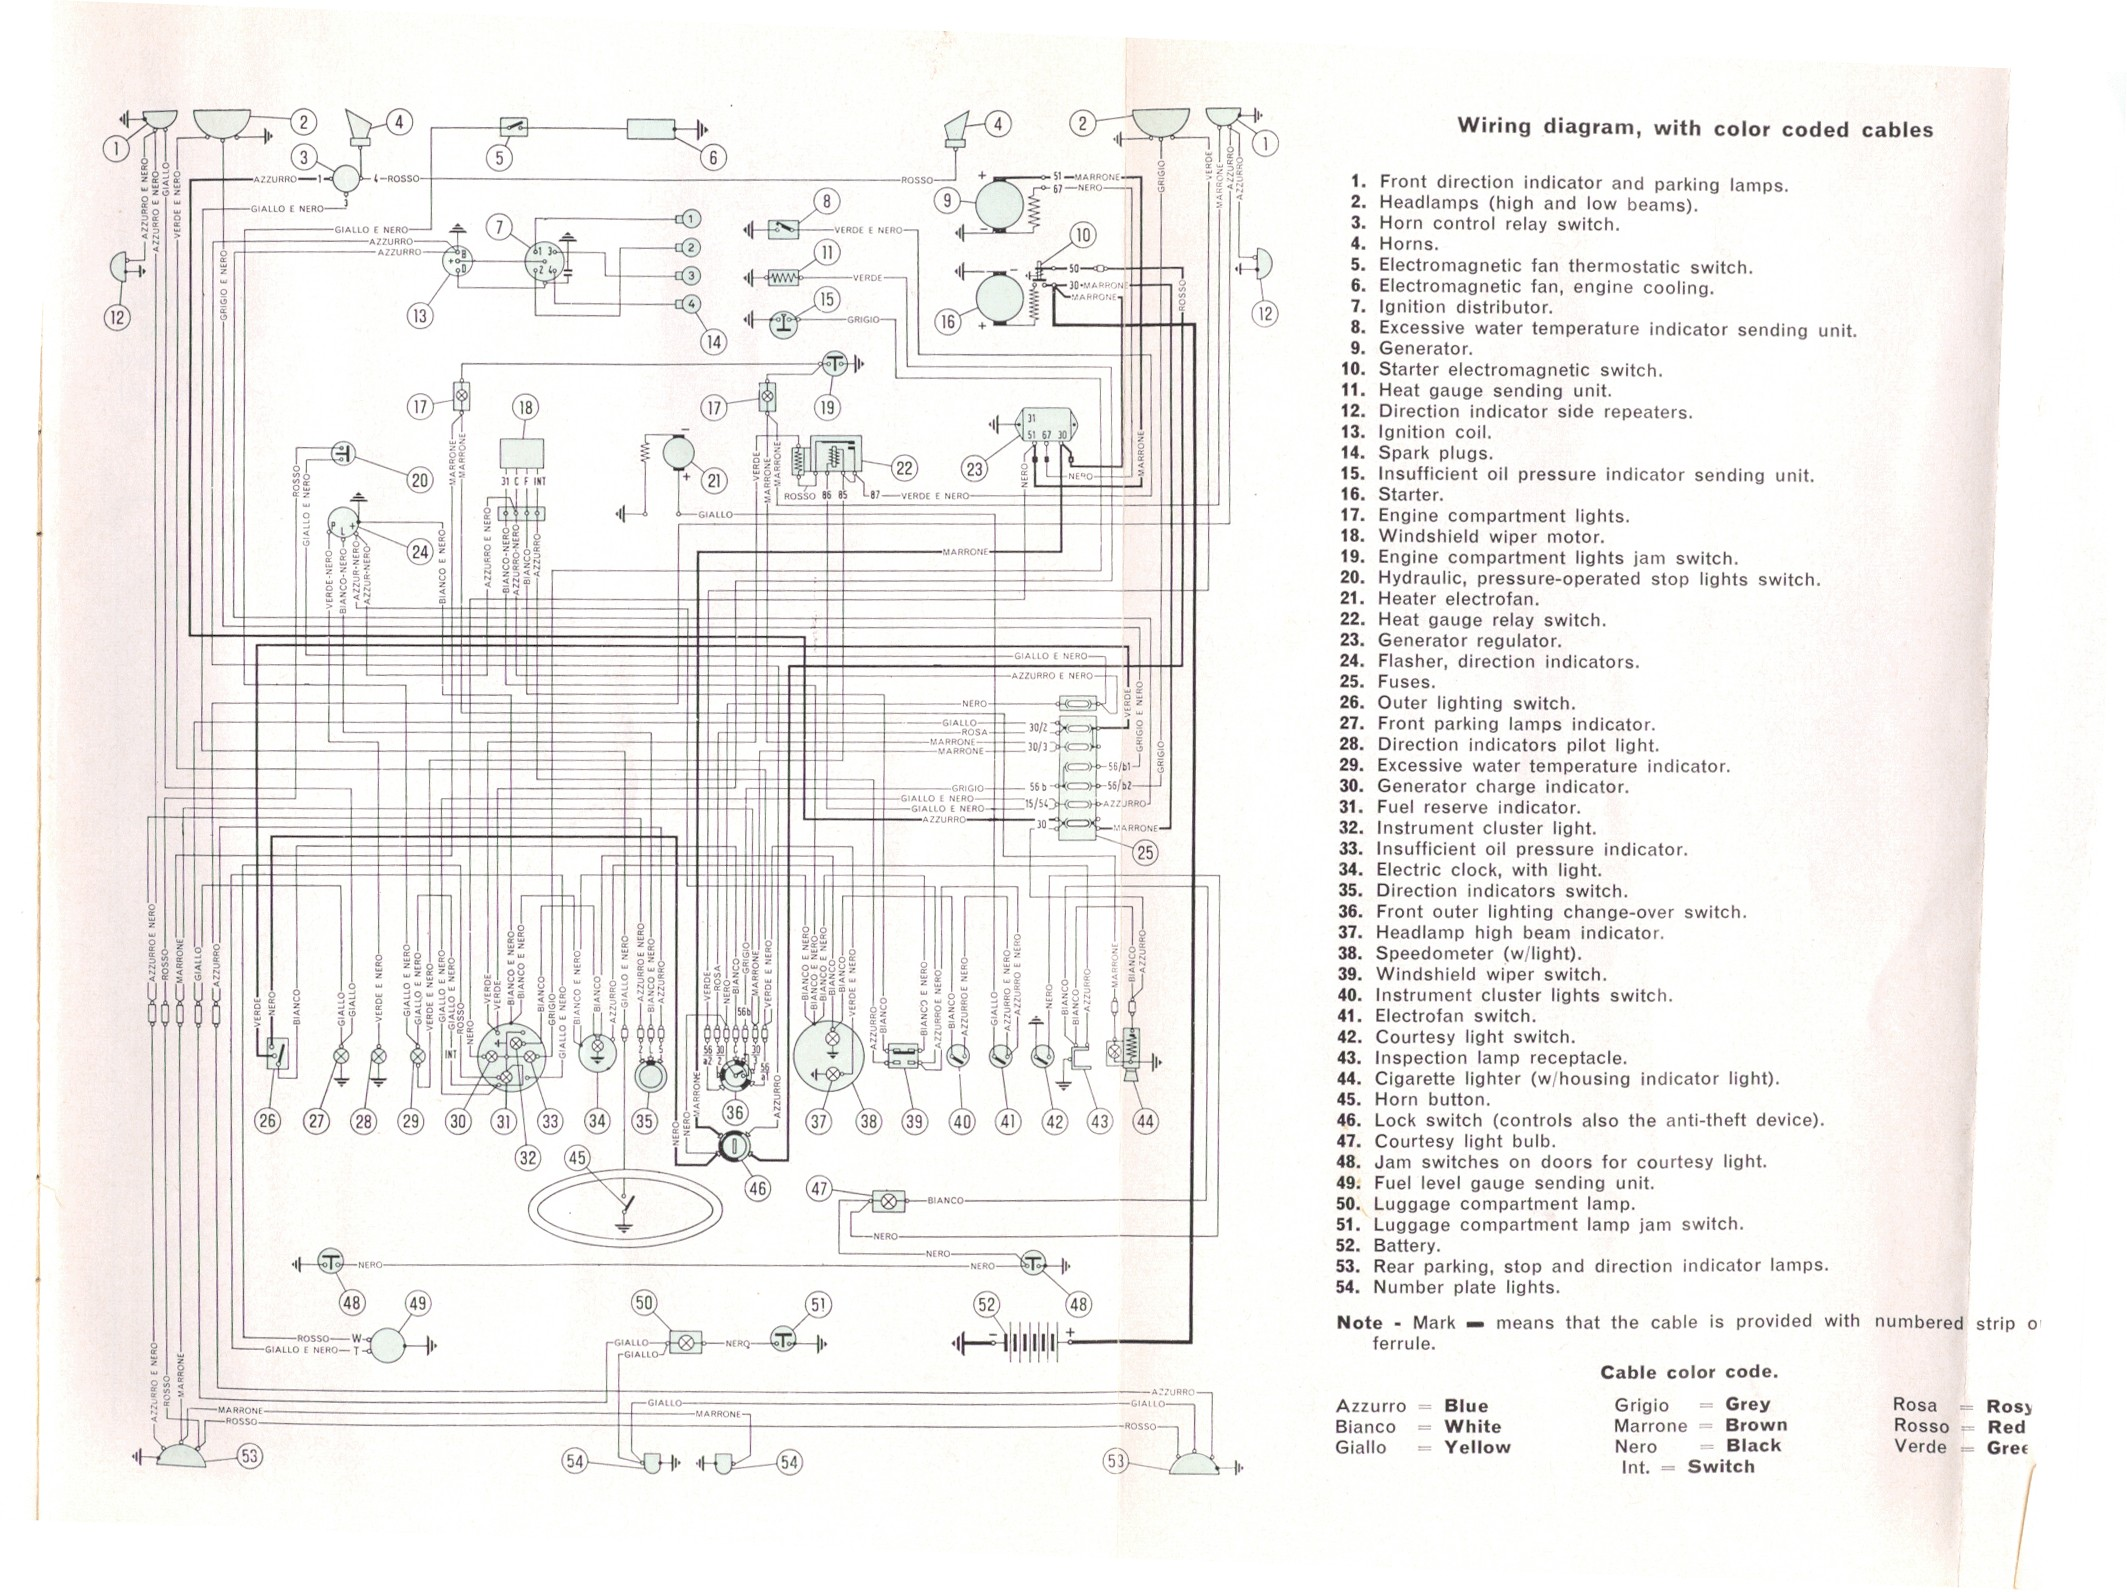 [DIAGRAM] Fiat Grande Punto Wiring Diagram FULL Version HD